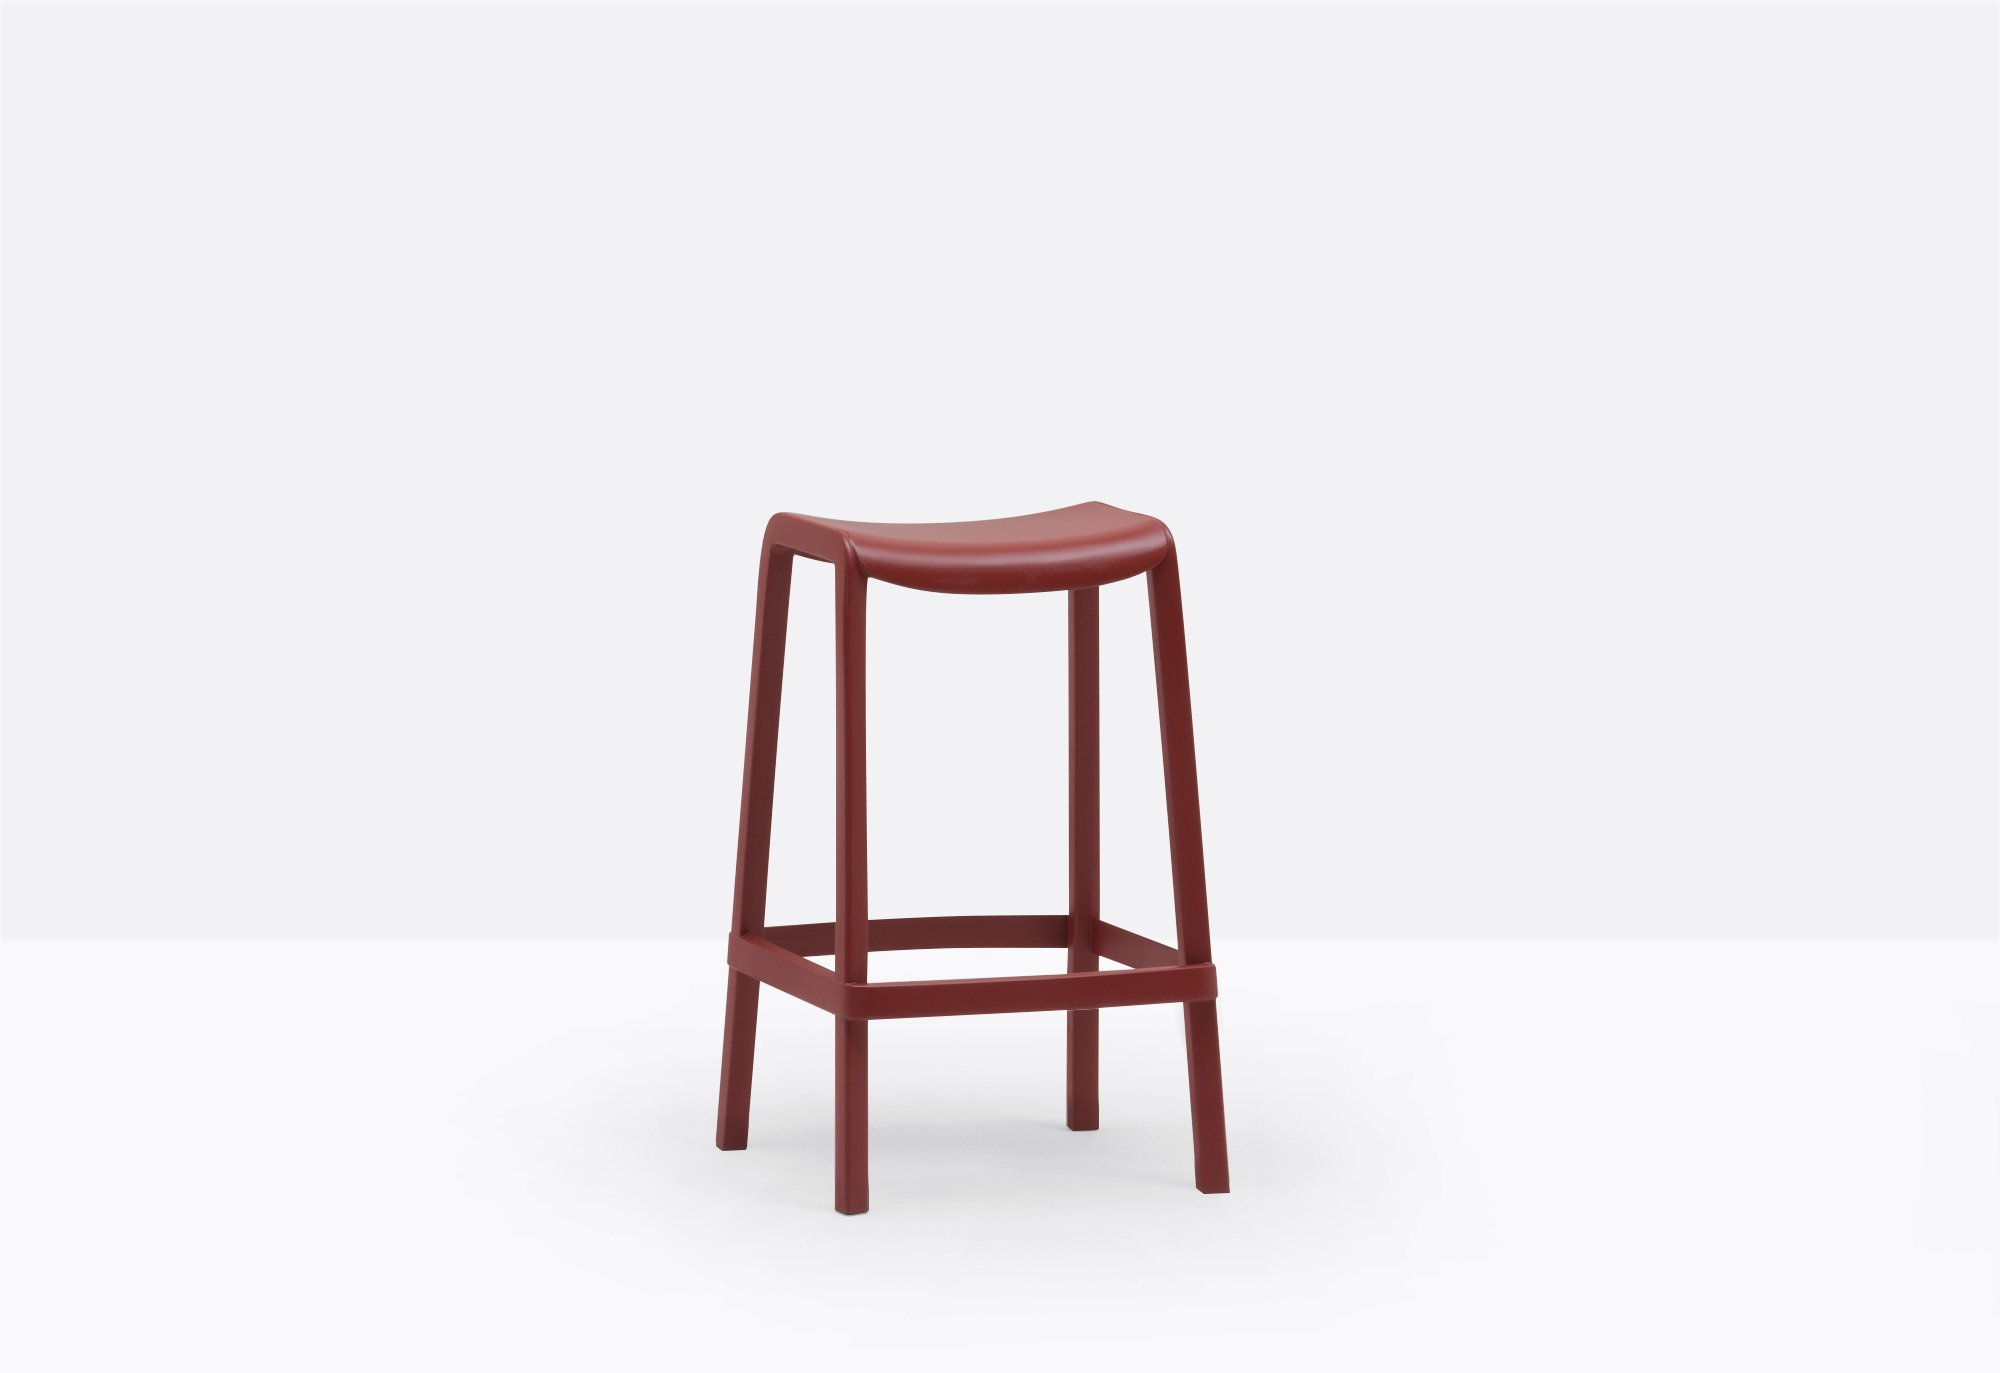 Dome Barstool from Pedrali, designed by Odoardo Fioravanti